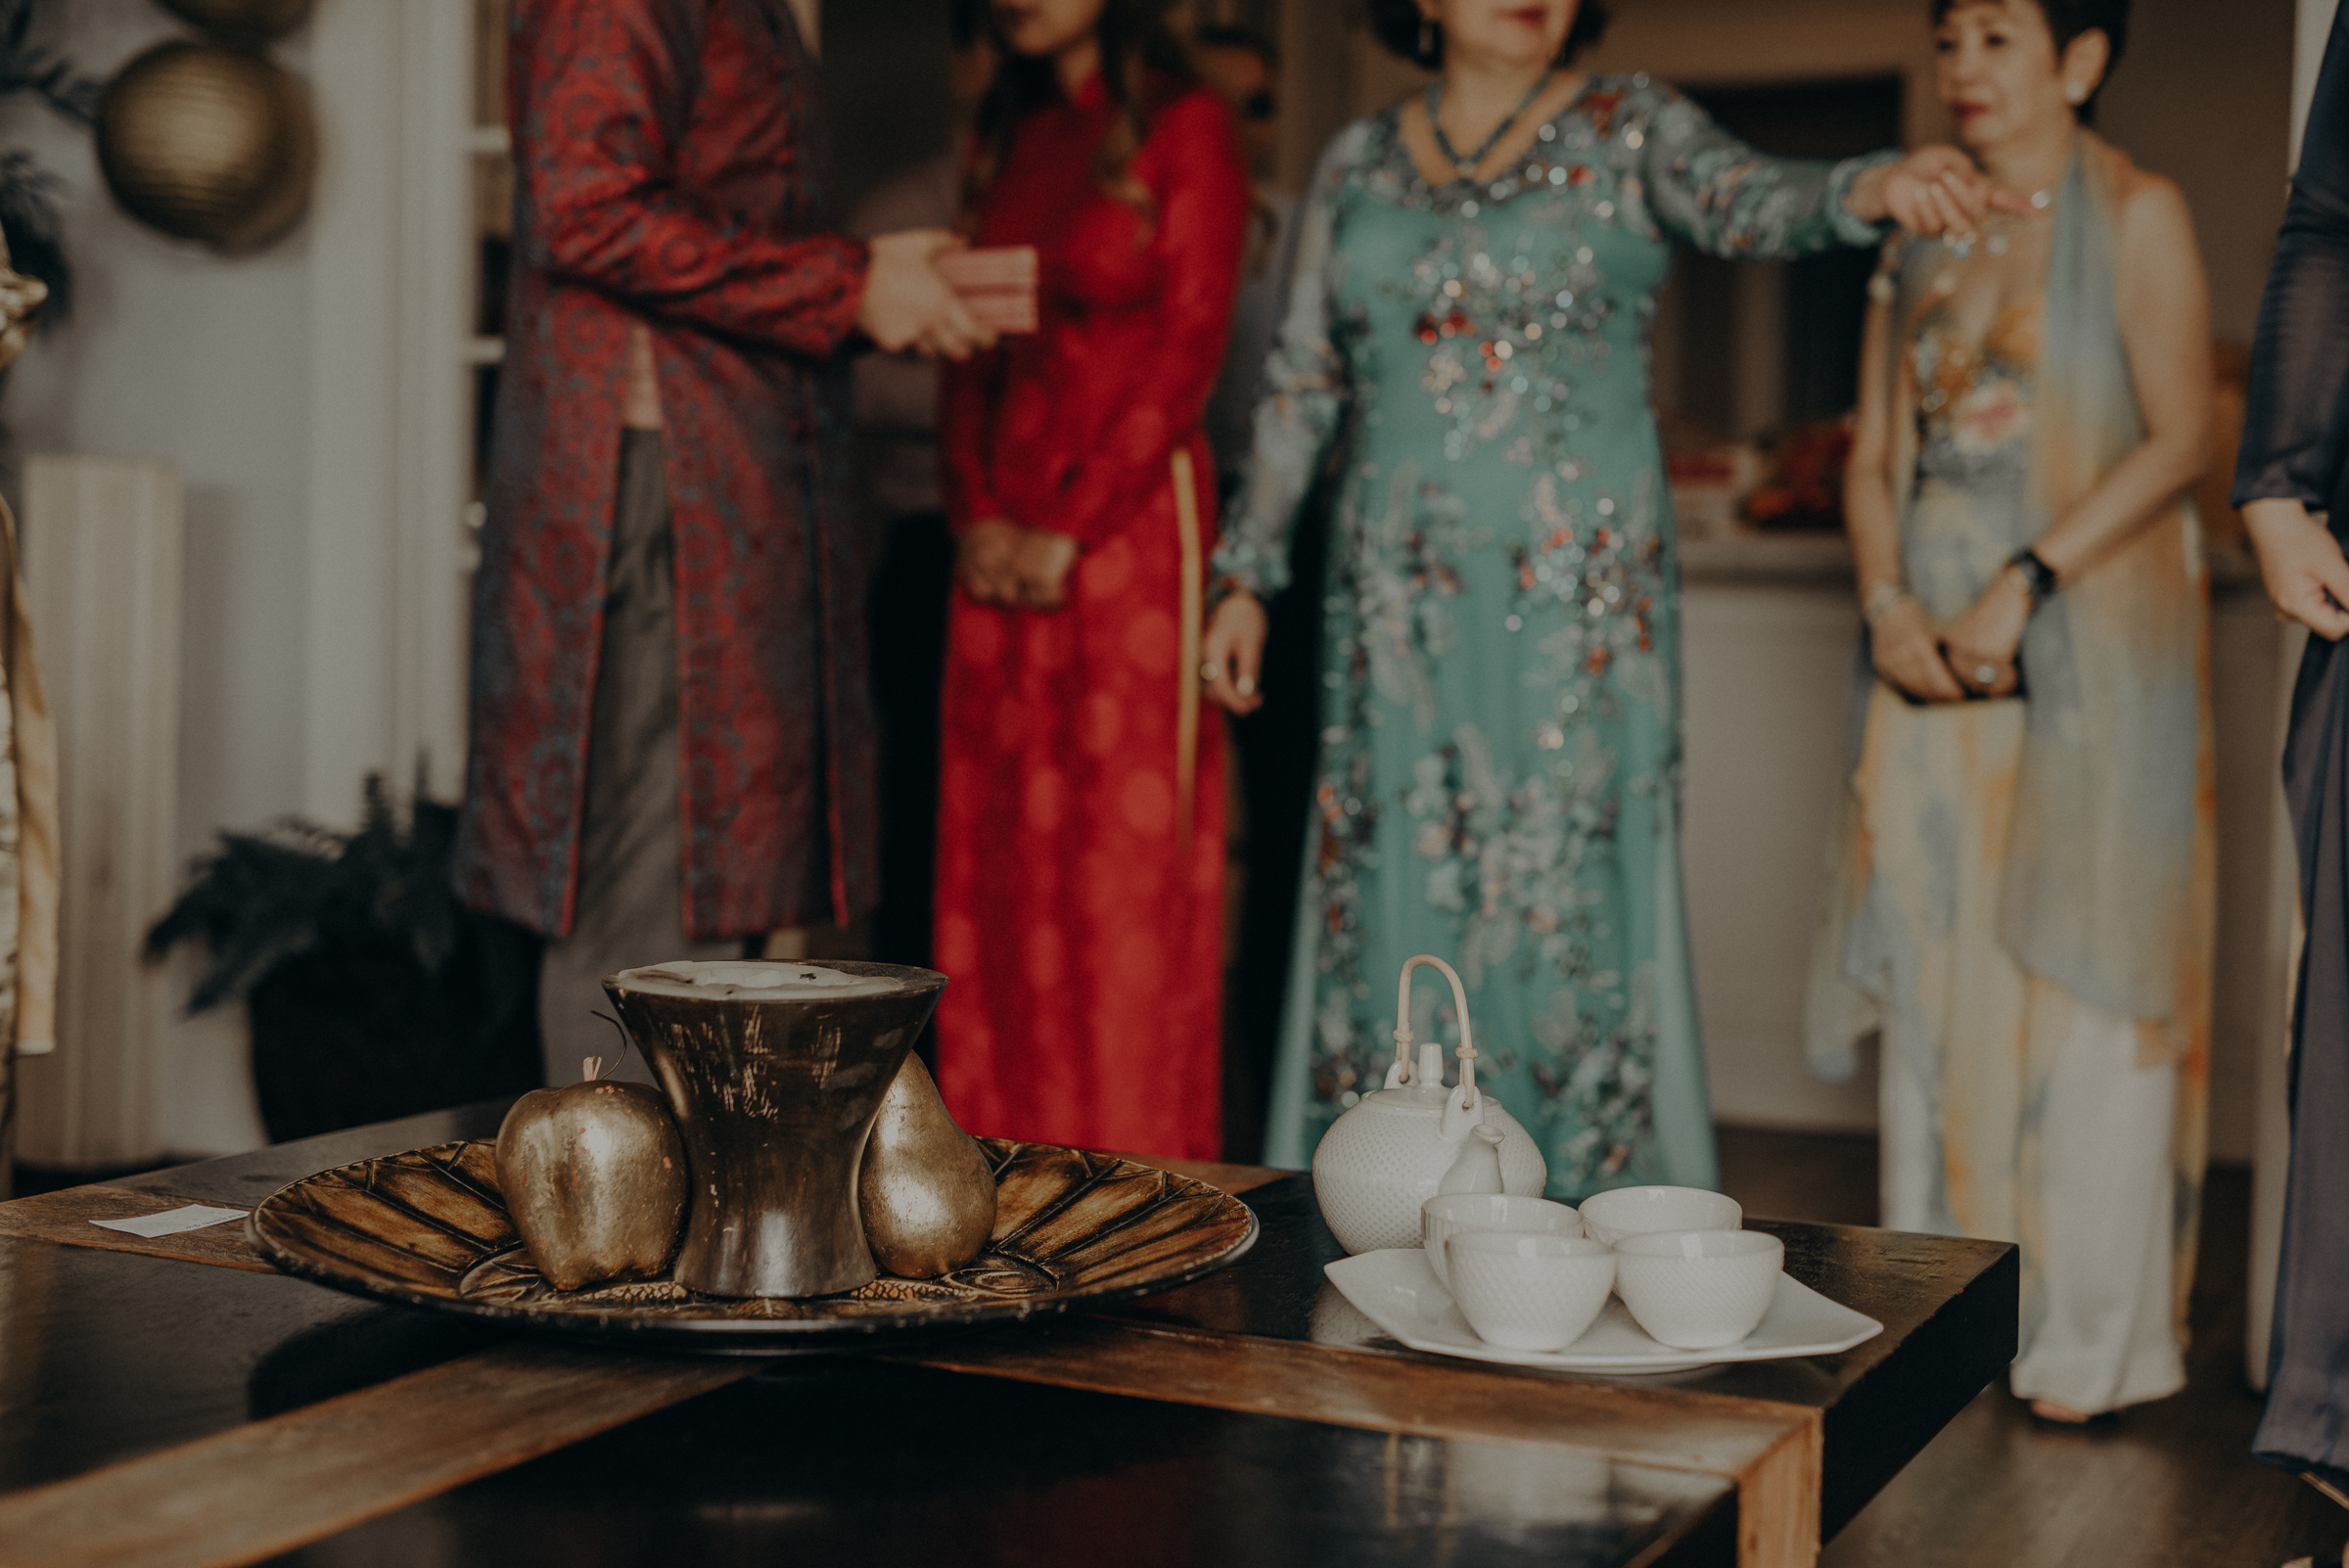 Los Angeles Wedding Photographer - IsaiahAndTaylor.com - The Ebell of Long Beach Wedding - Traditional Vietnamese tea ceremony-057.jpg